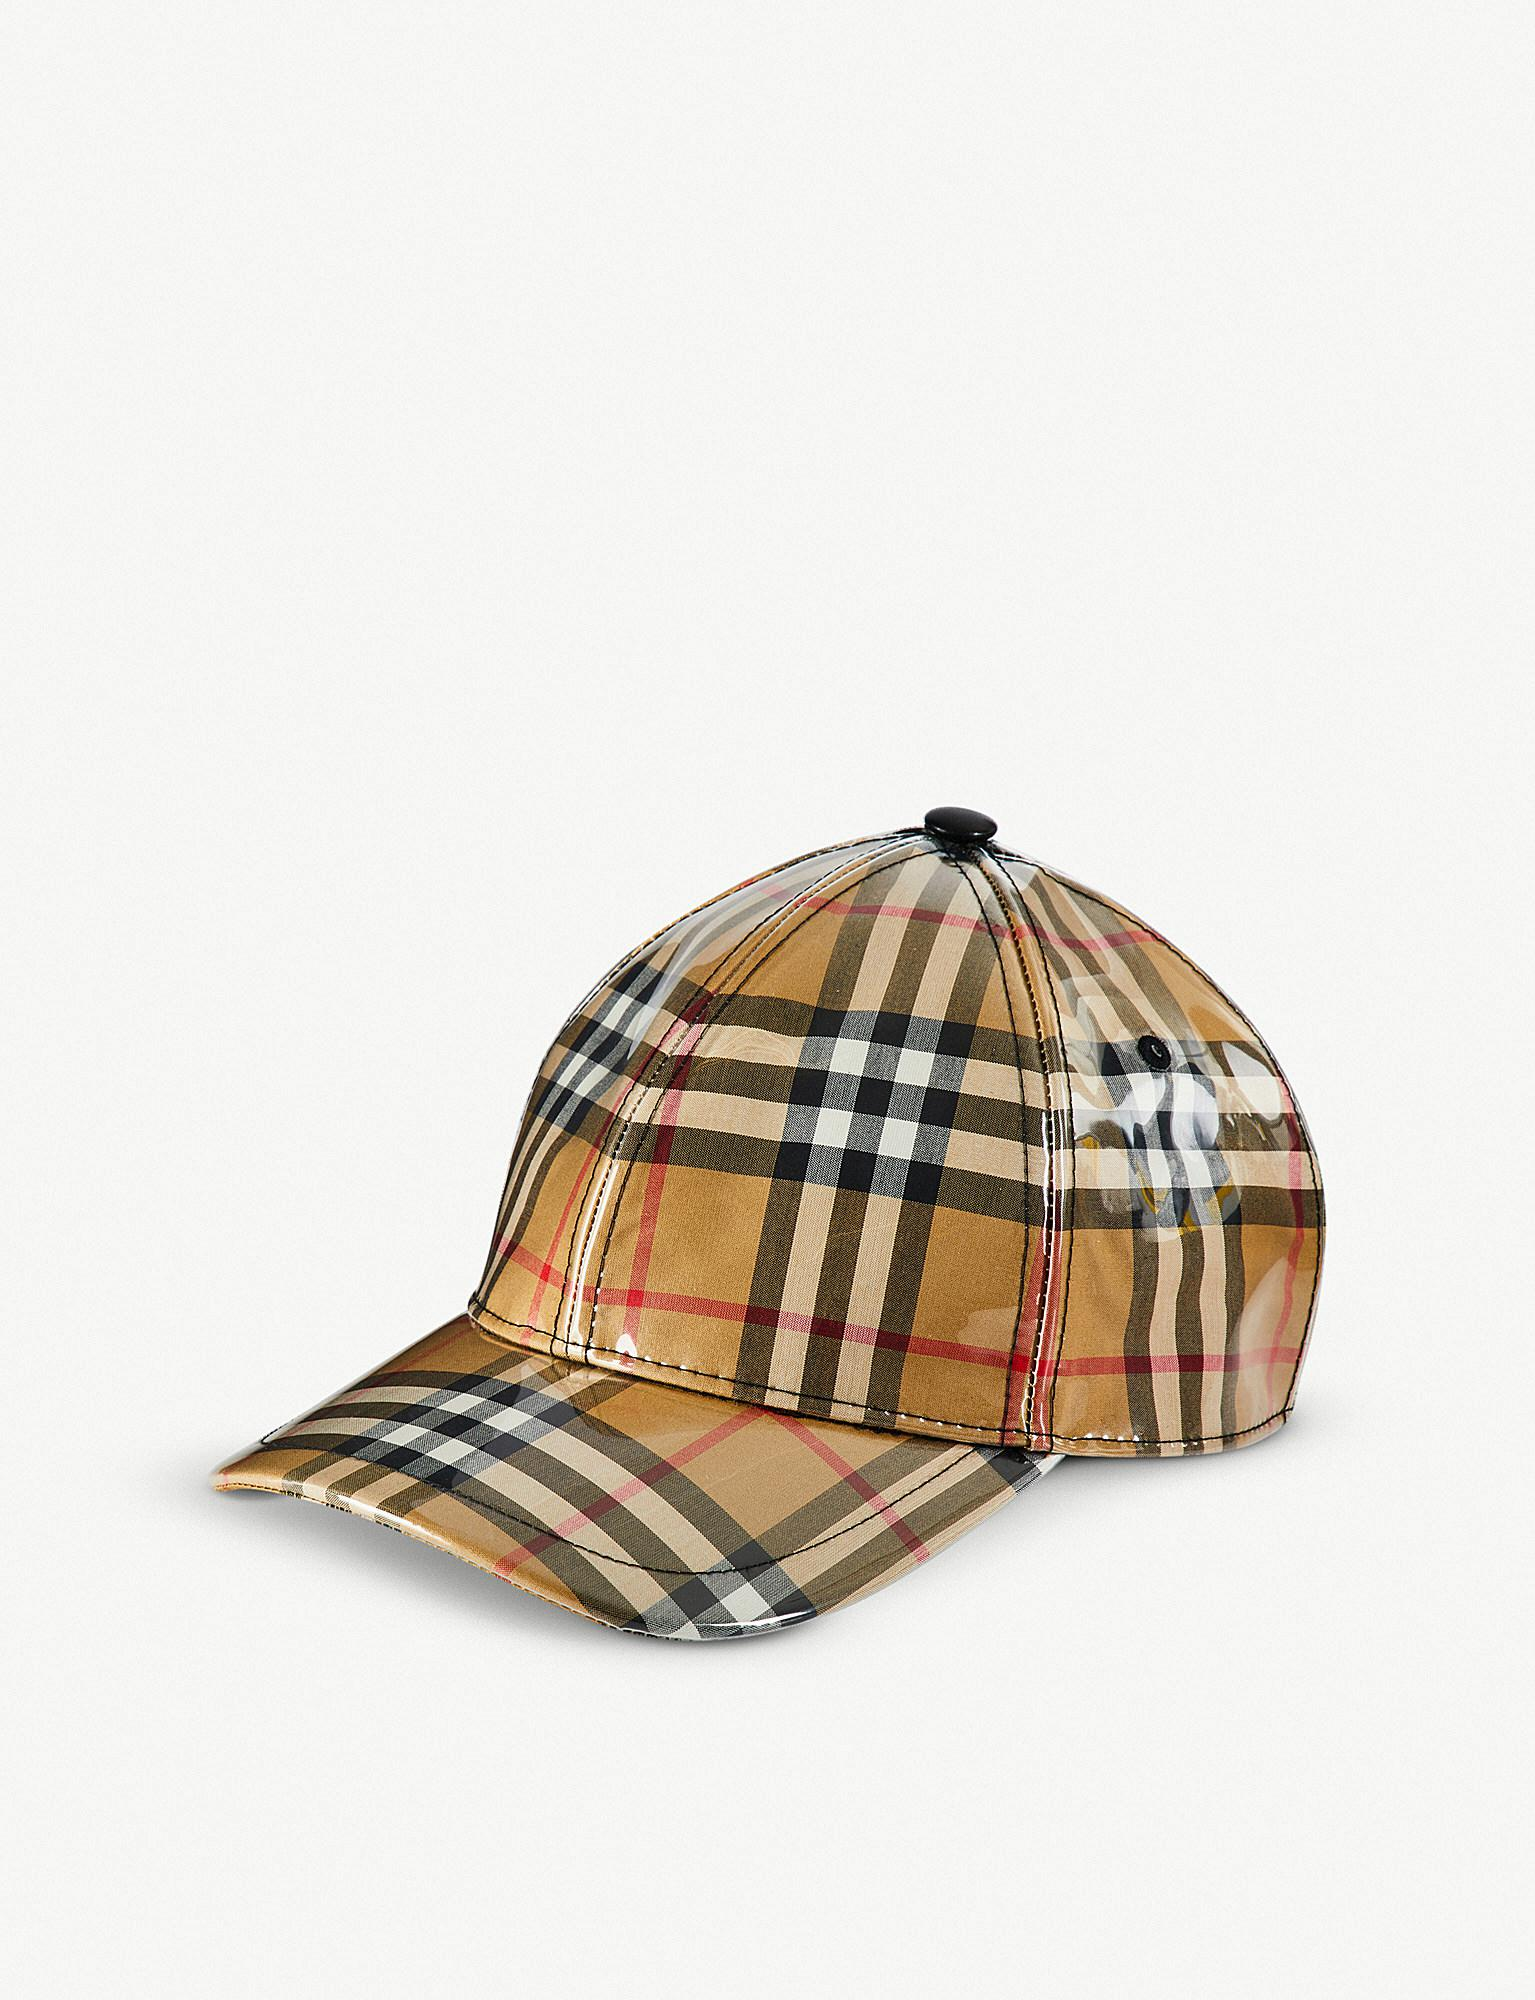 3f42b6be Burberry Vintage Check Pvc Baseball Cap for Men - Lyst